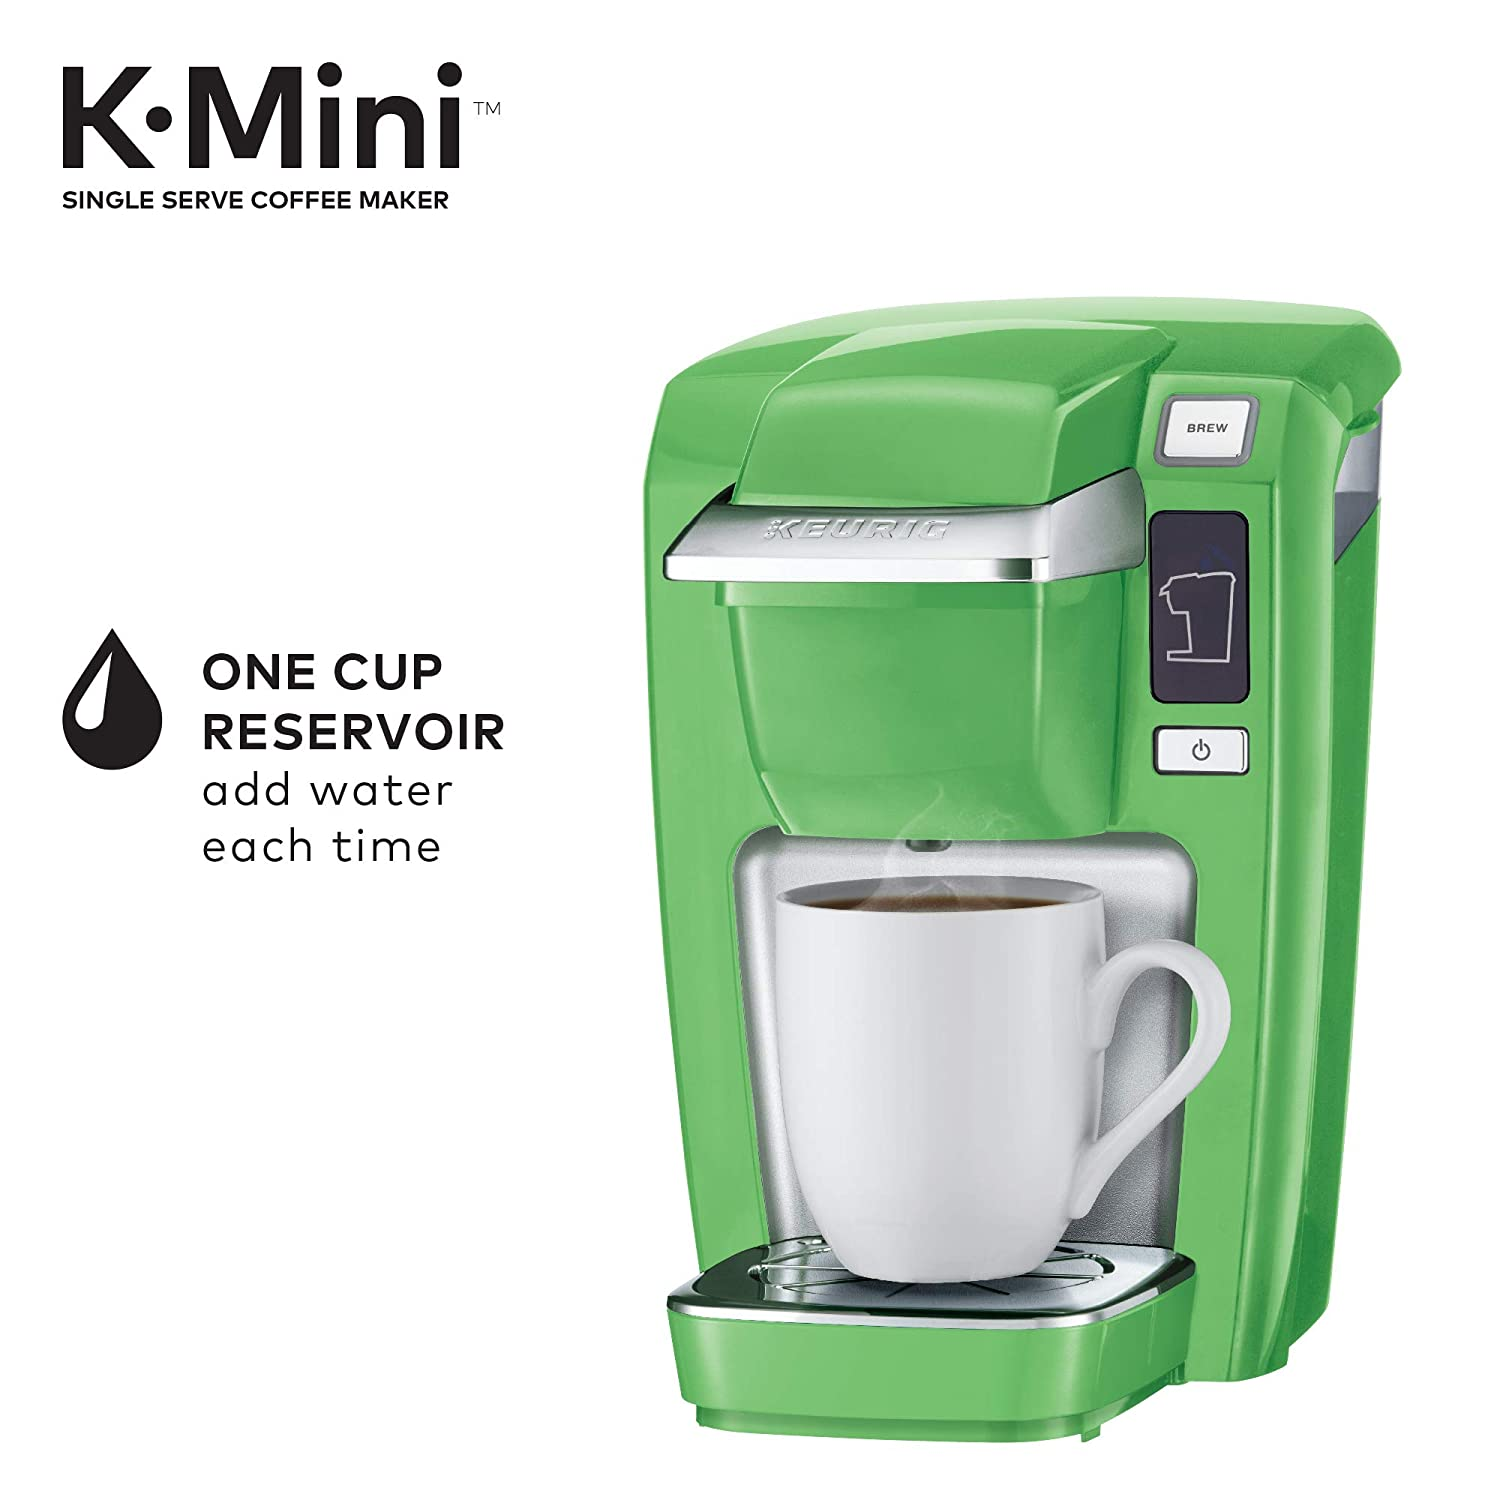 Amazoncom Keurig K Mini K15 Single Serve Compact Coffee Maker